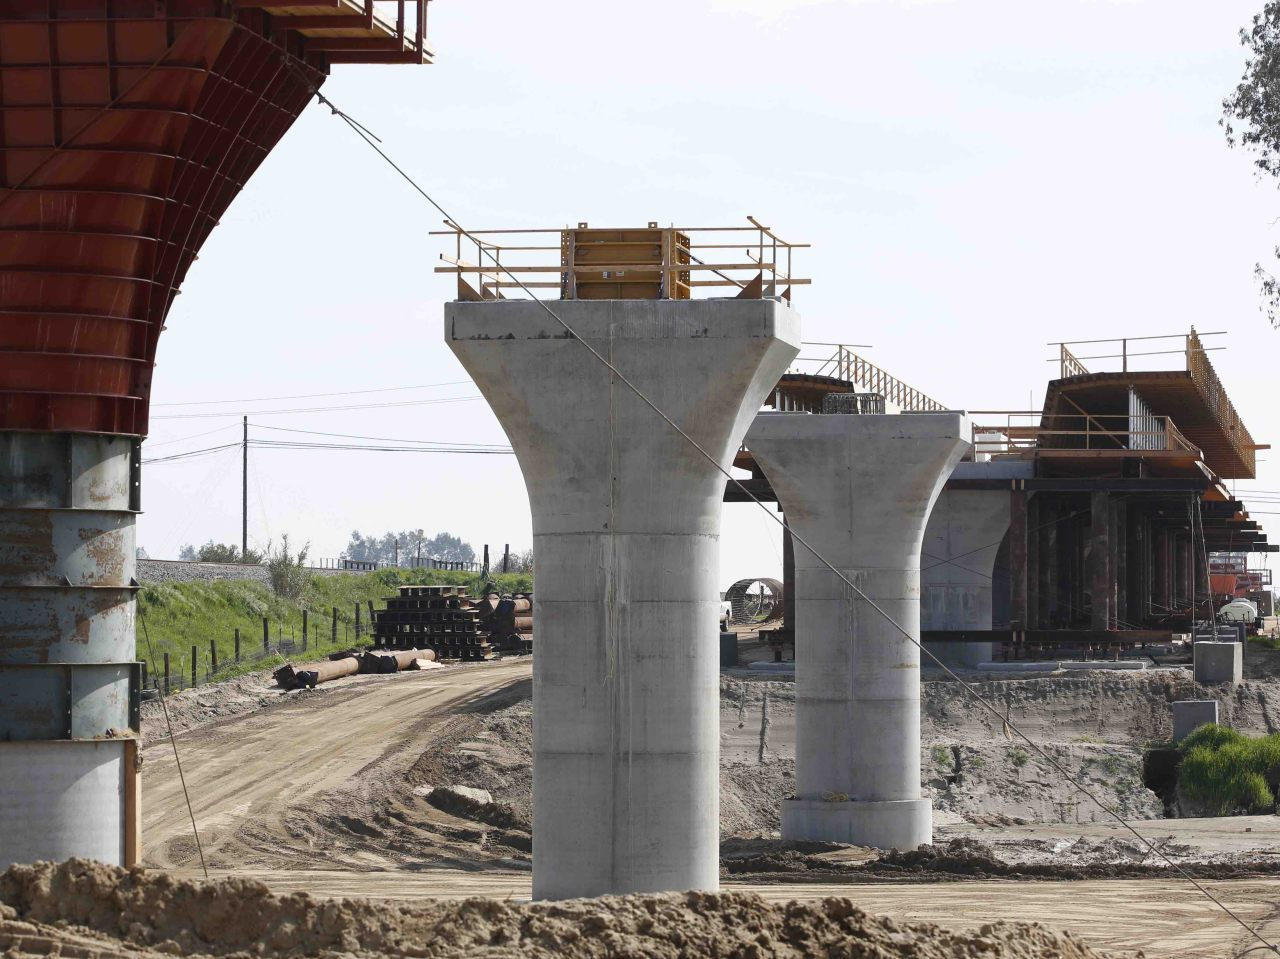 CA High-Speed Rail Contractor Gets 18% Raise After Missing Completion Date